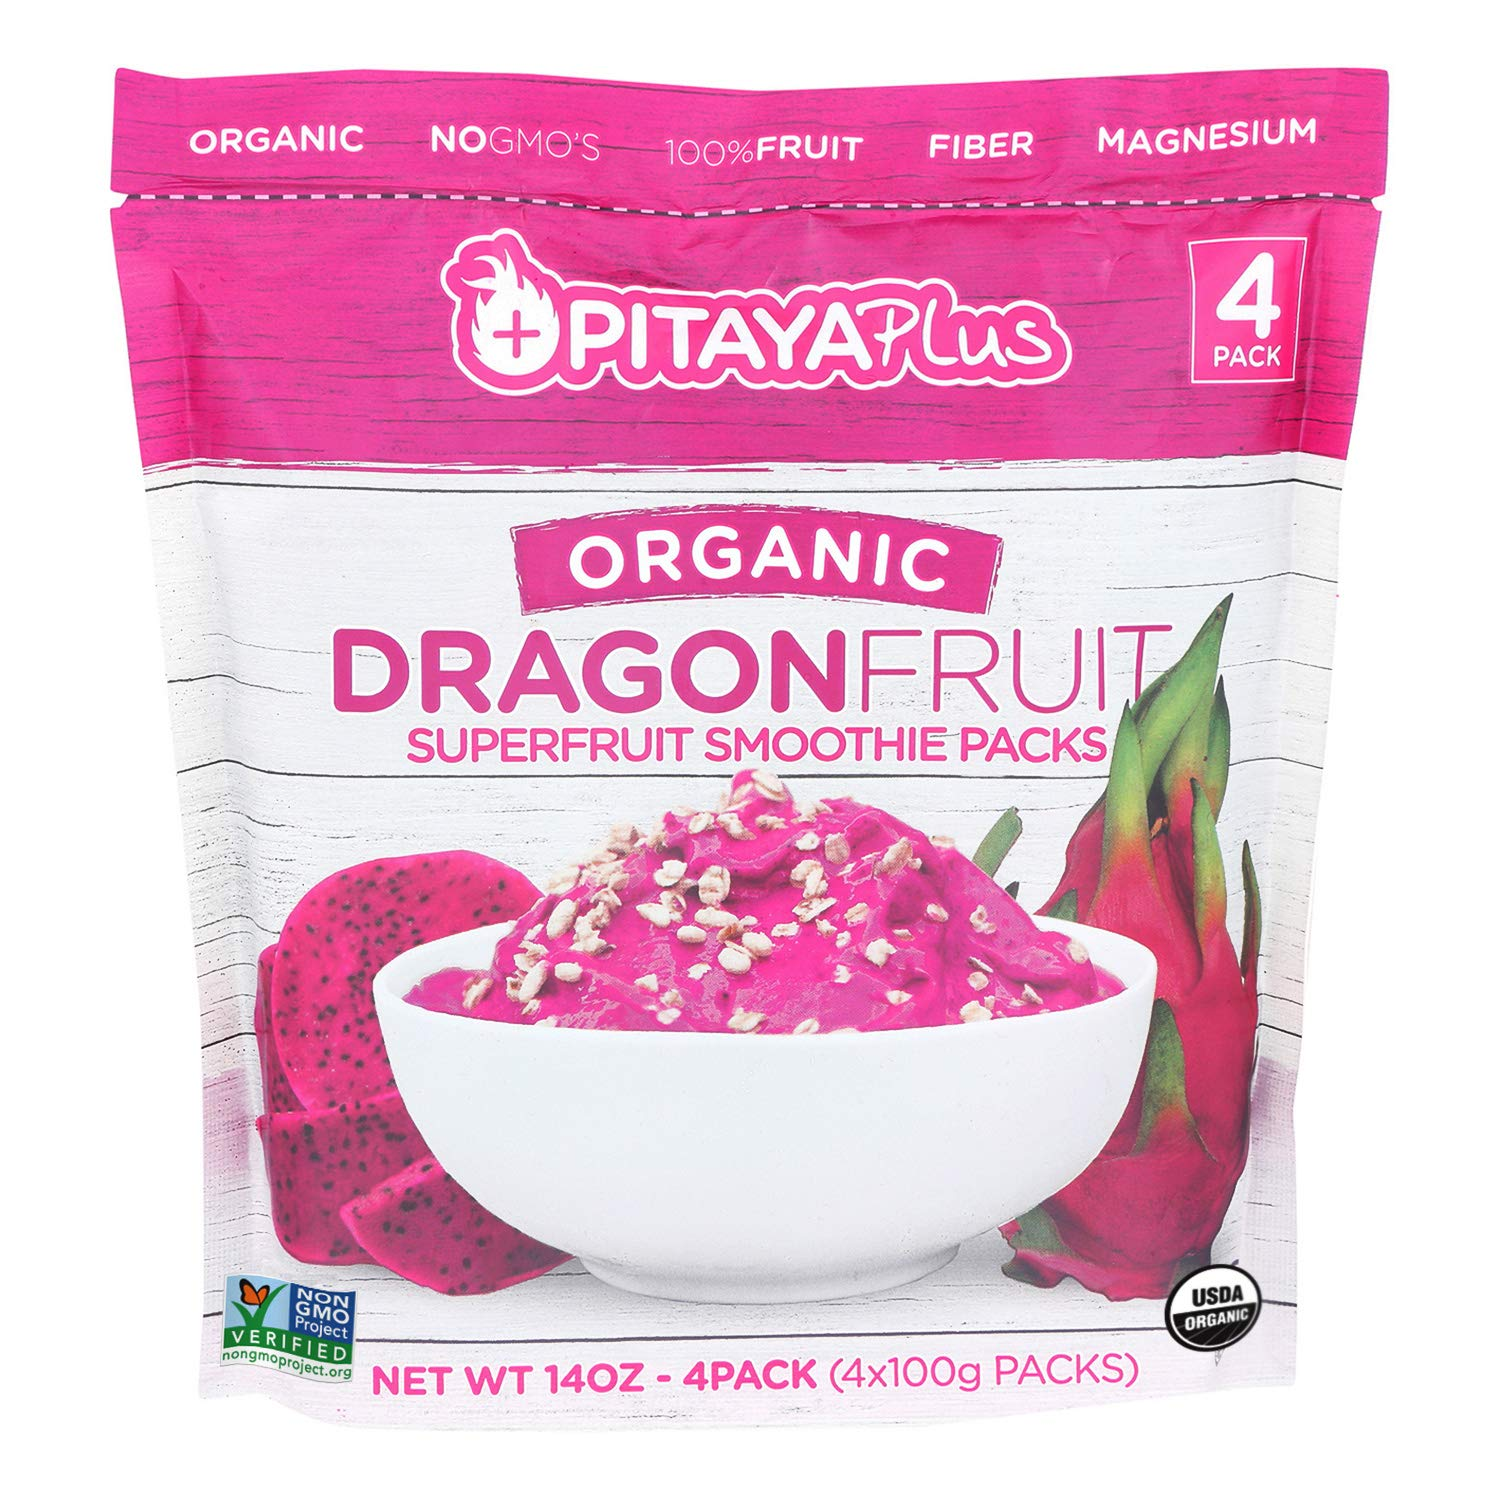 Pitaya Plus Organic Red Dragon Fruit Smoothie Pack. Frozen Puree Packets that are a Good Source of Fiber, Magnesium, Potassium, Iron & More. 14 oz (Pack of 15) by Pitaya Plus